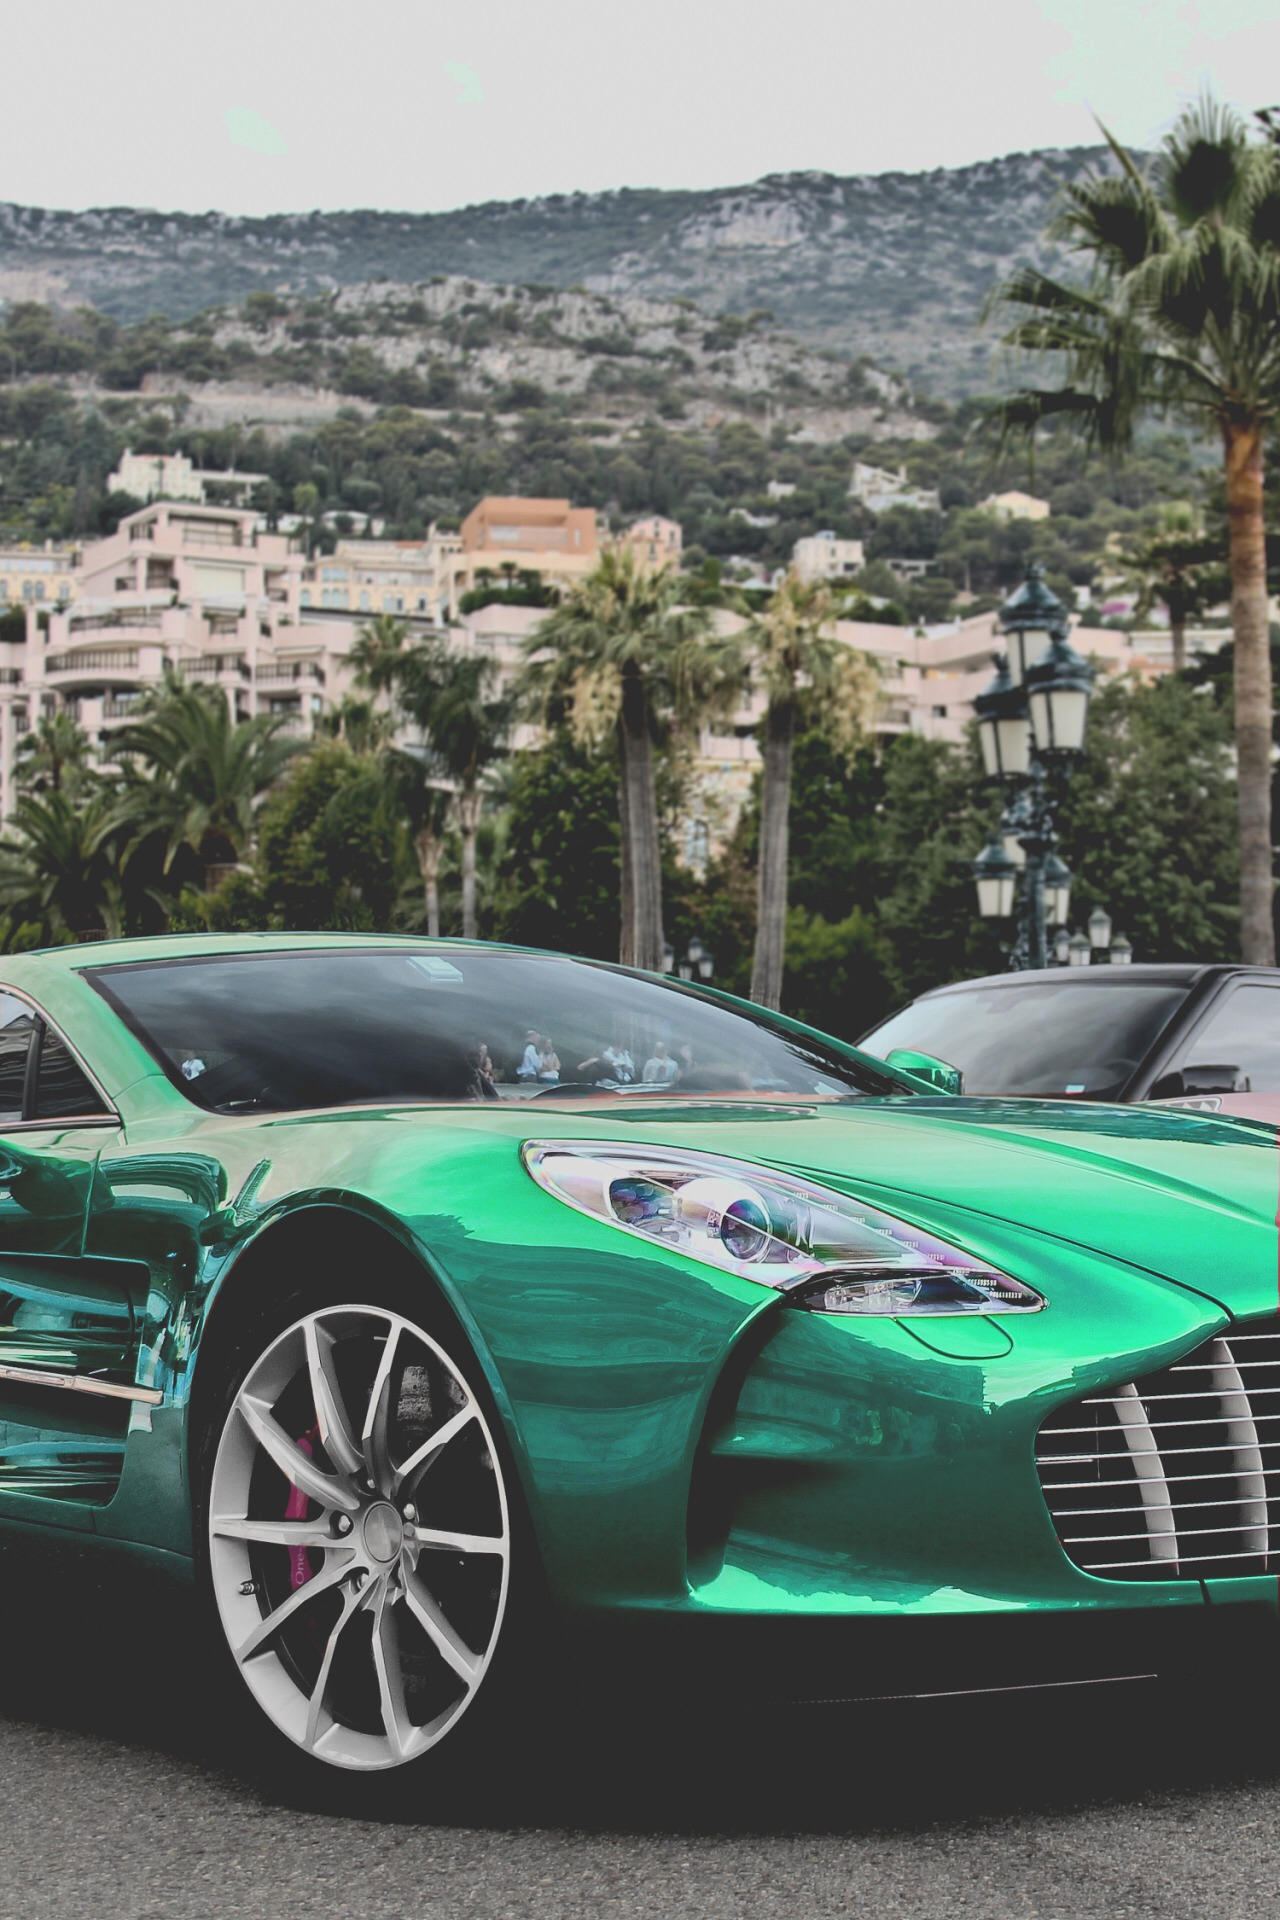 Visit-The-MACHINE-Shop-Caf%C3%A9-The-Best-of-Aston-Martin-Emerald-Green-Aston-Martin-wallpaper-wp58010518